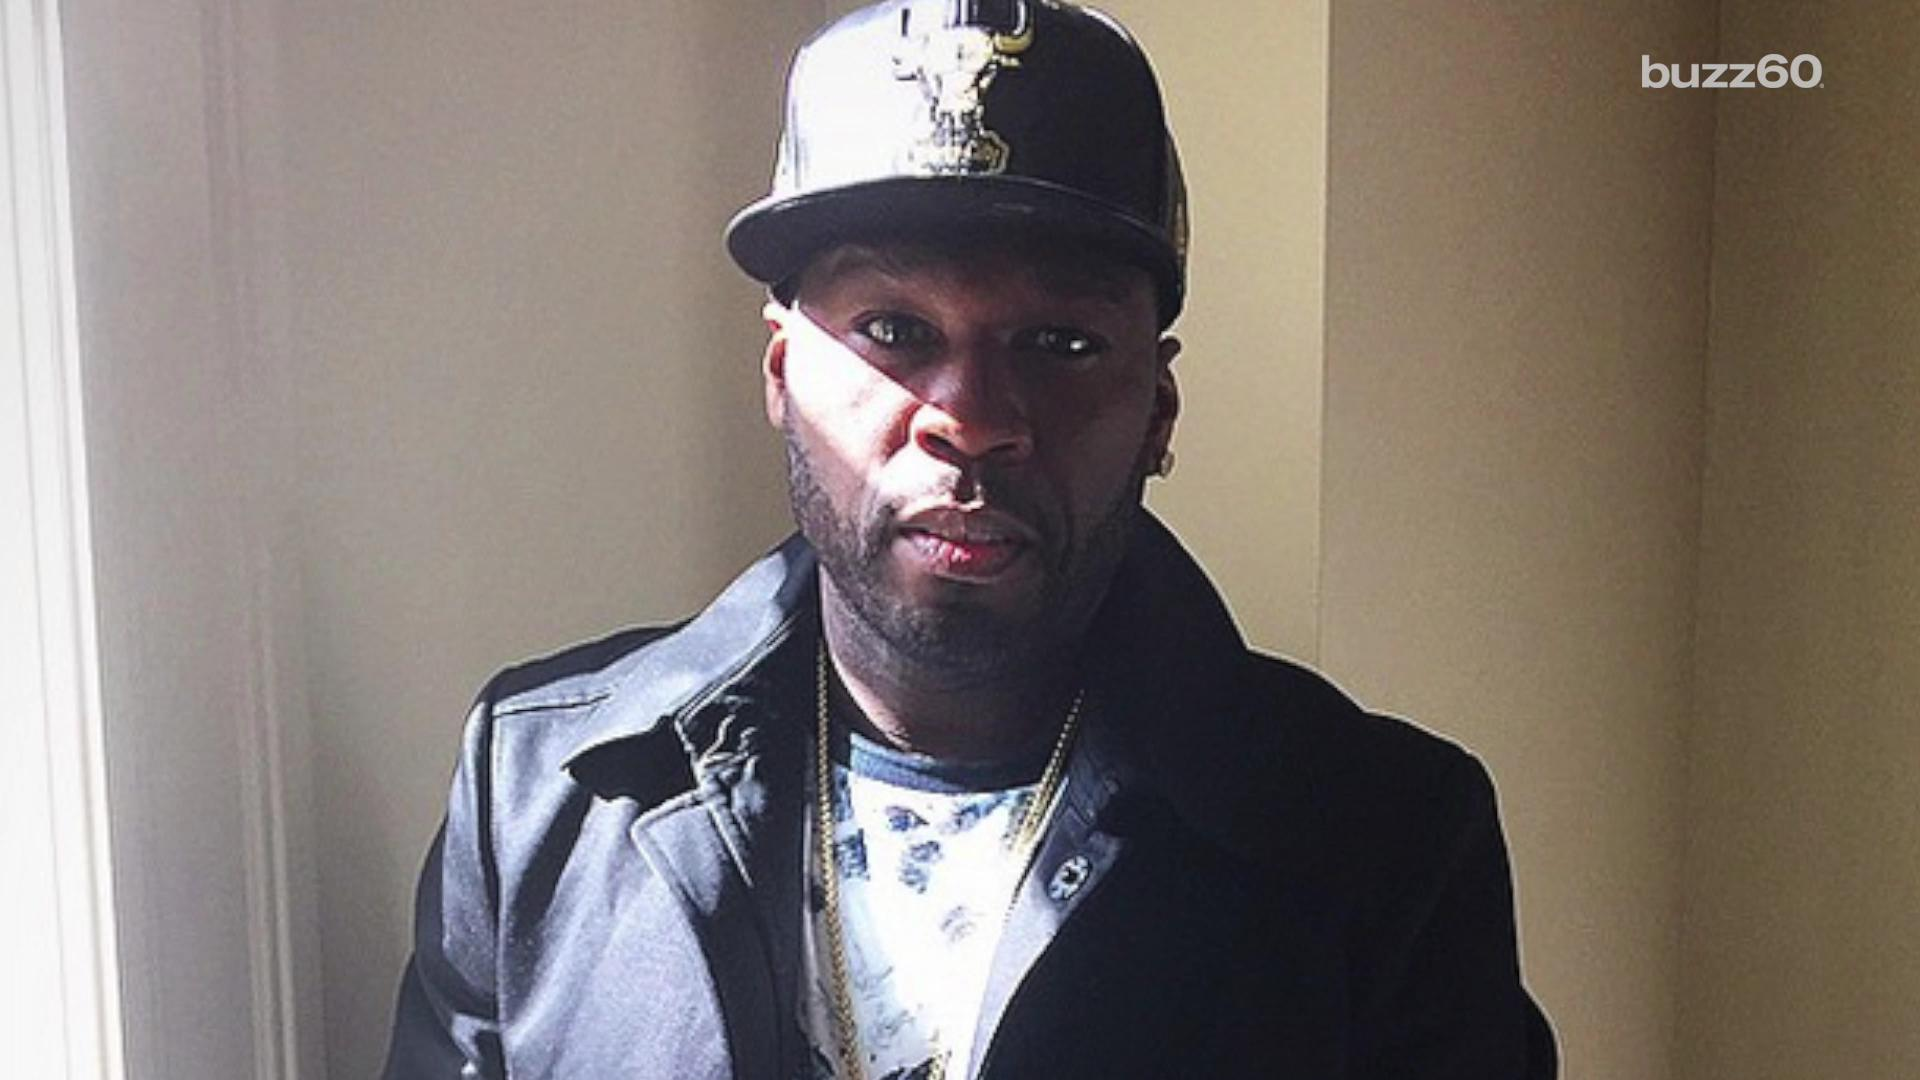 50 Cent Video Porno what bankruptcy? 50 cent shows off new house